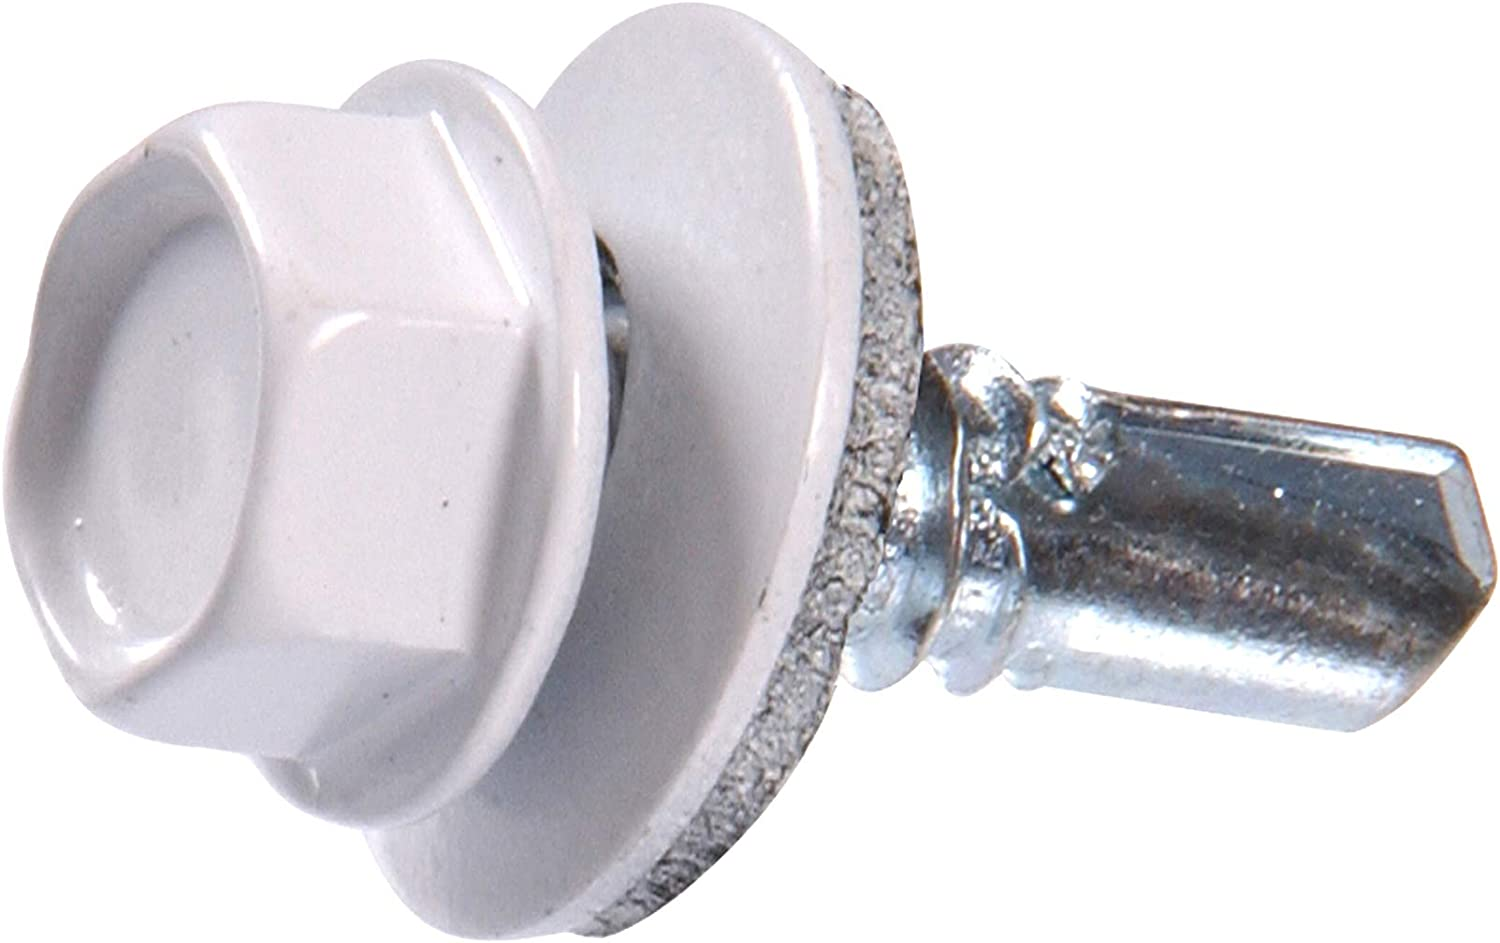 1-Pound 2 Pack The Hillman Group 48049 14 X 7//8-Inch White Painted Head Lap Stitch Screw